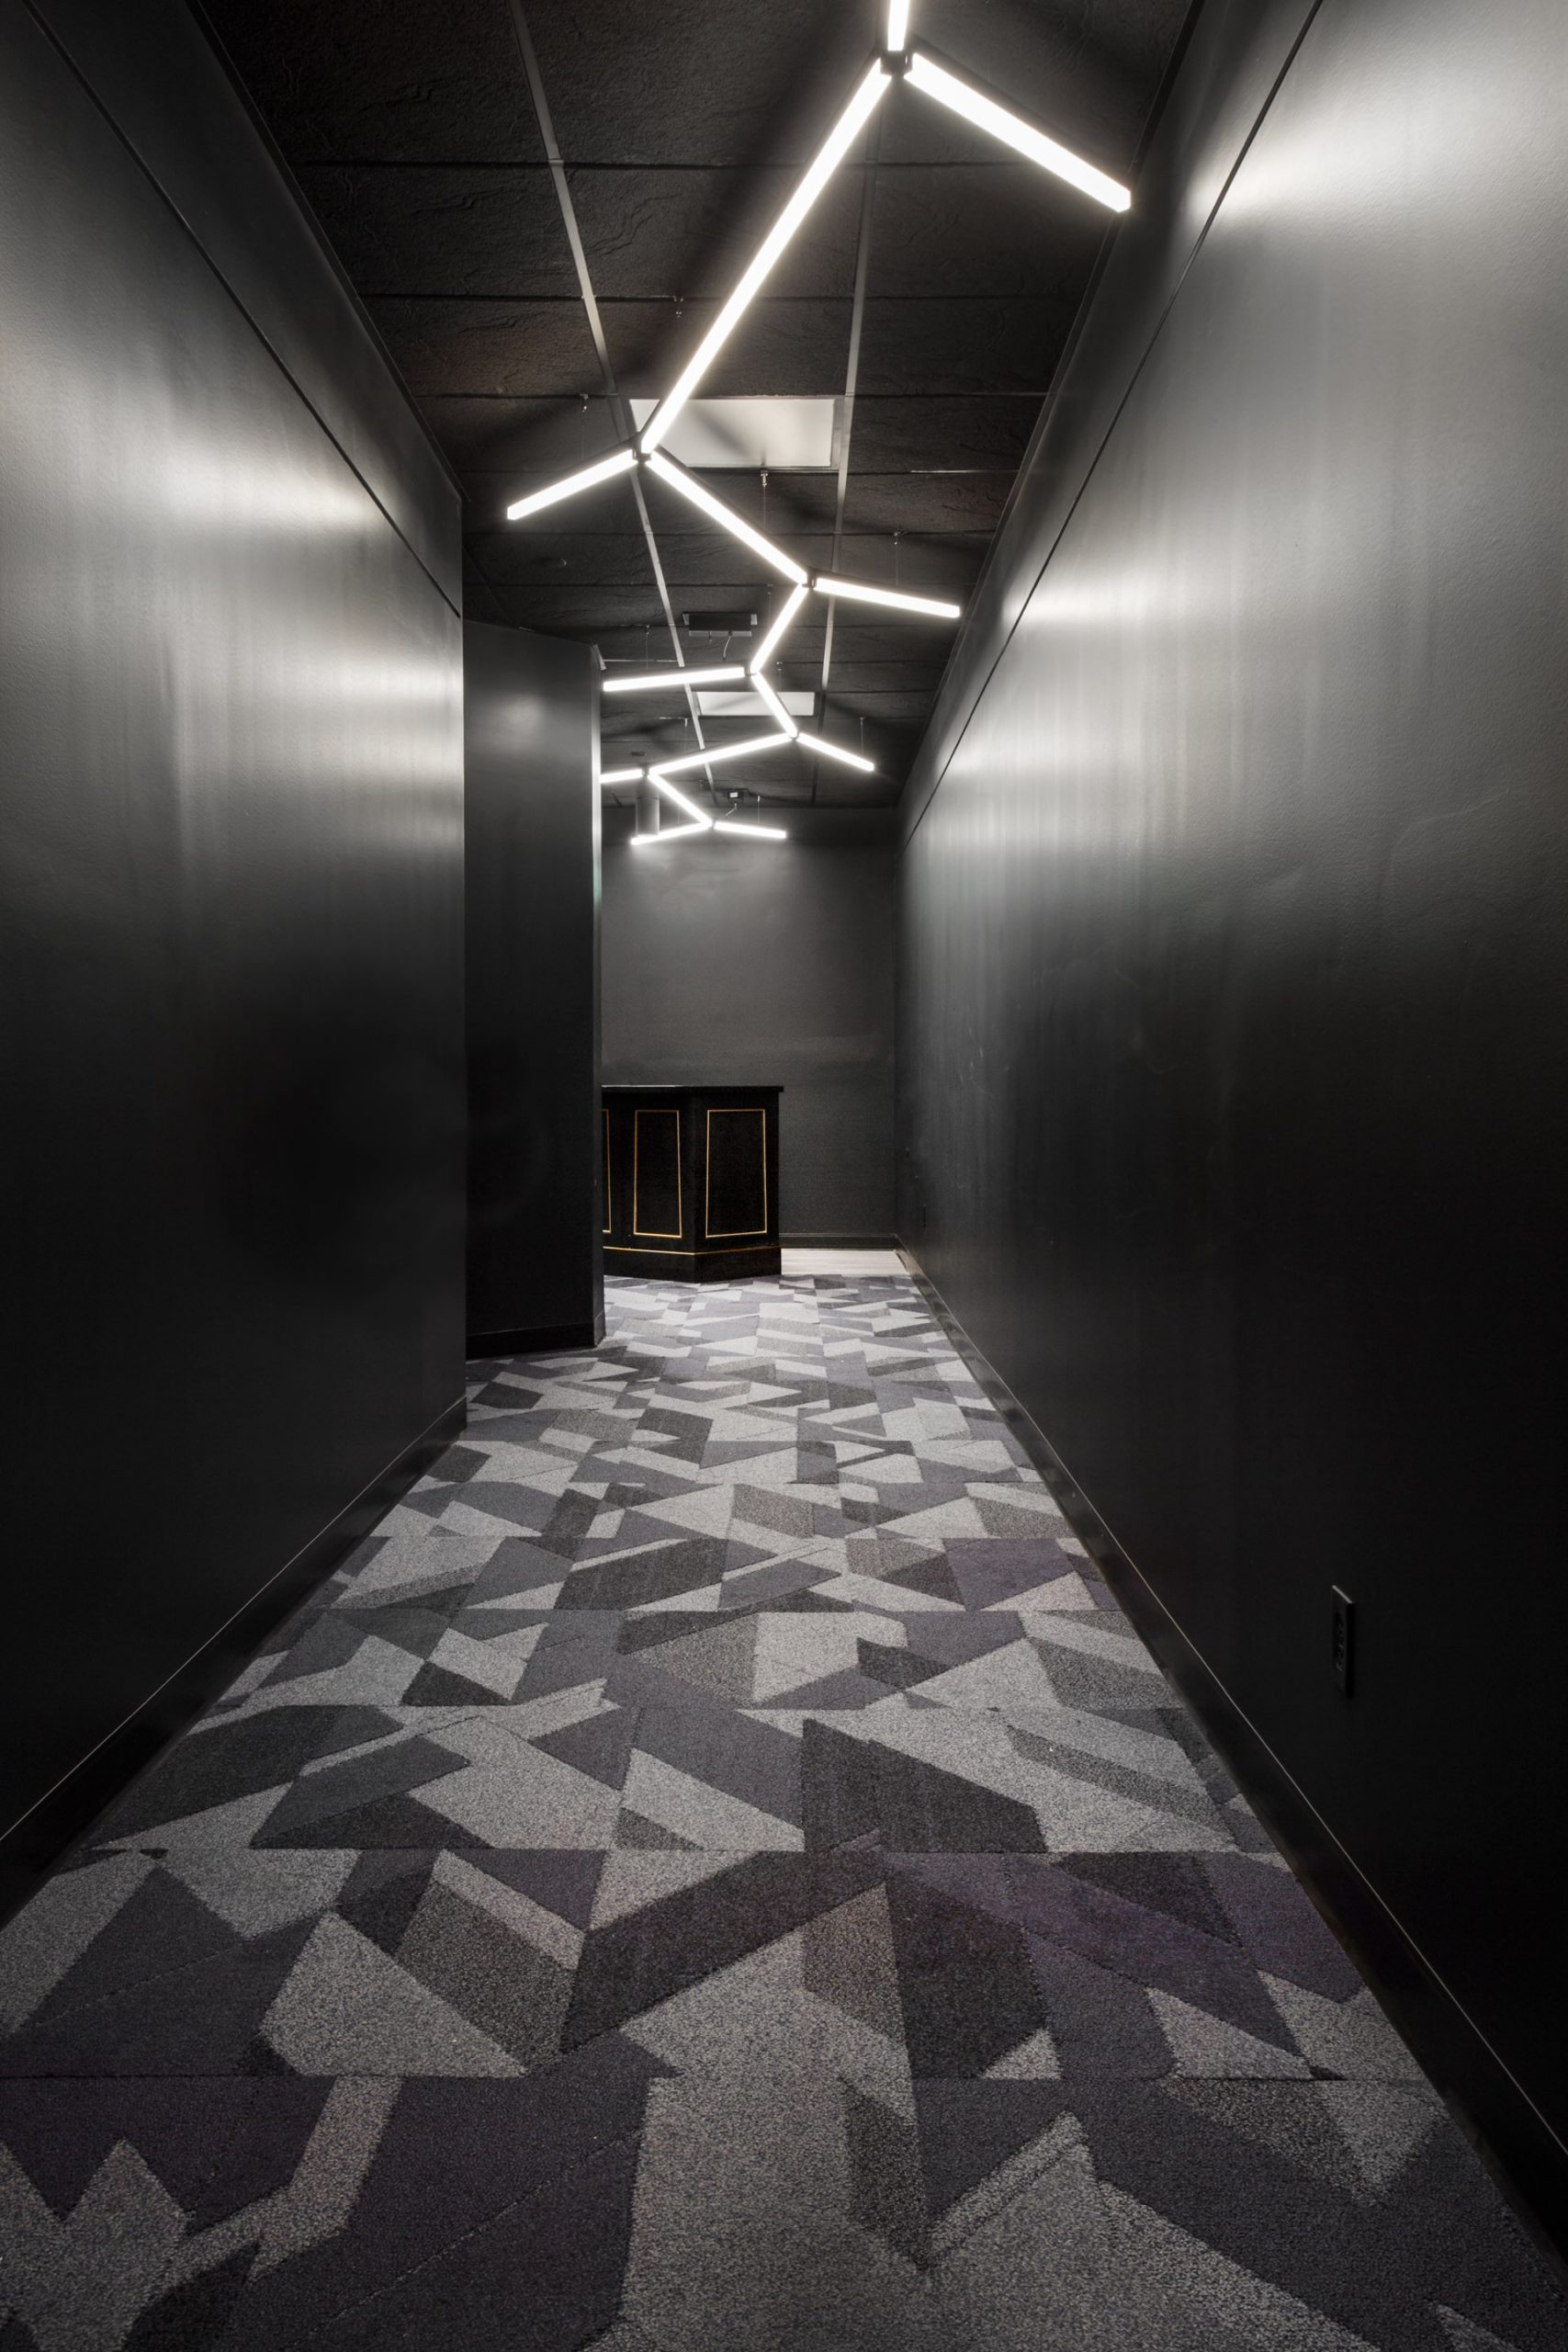 Hallway, Egyptian Black Box Theater, architectural design by Elliott Workgroup